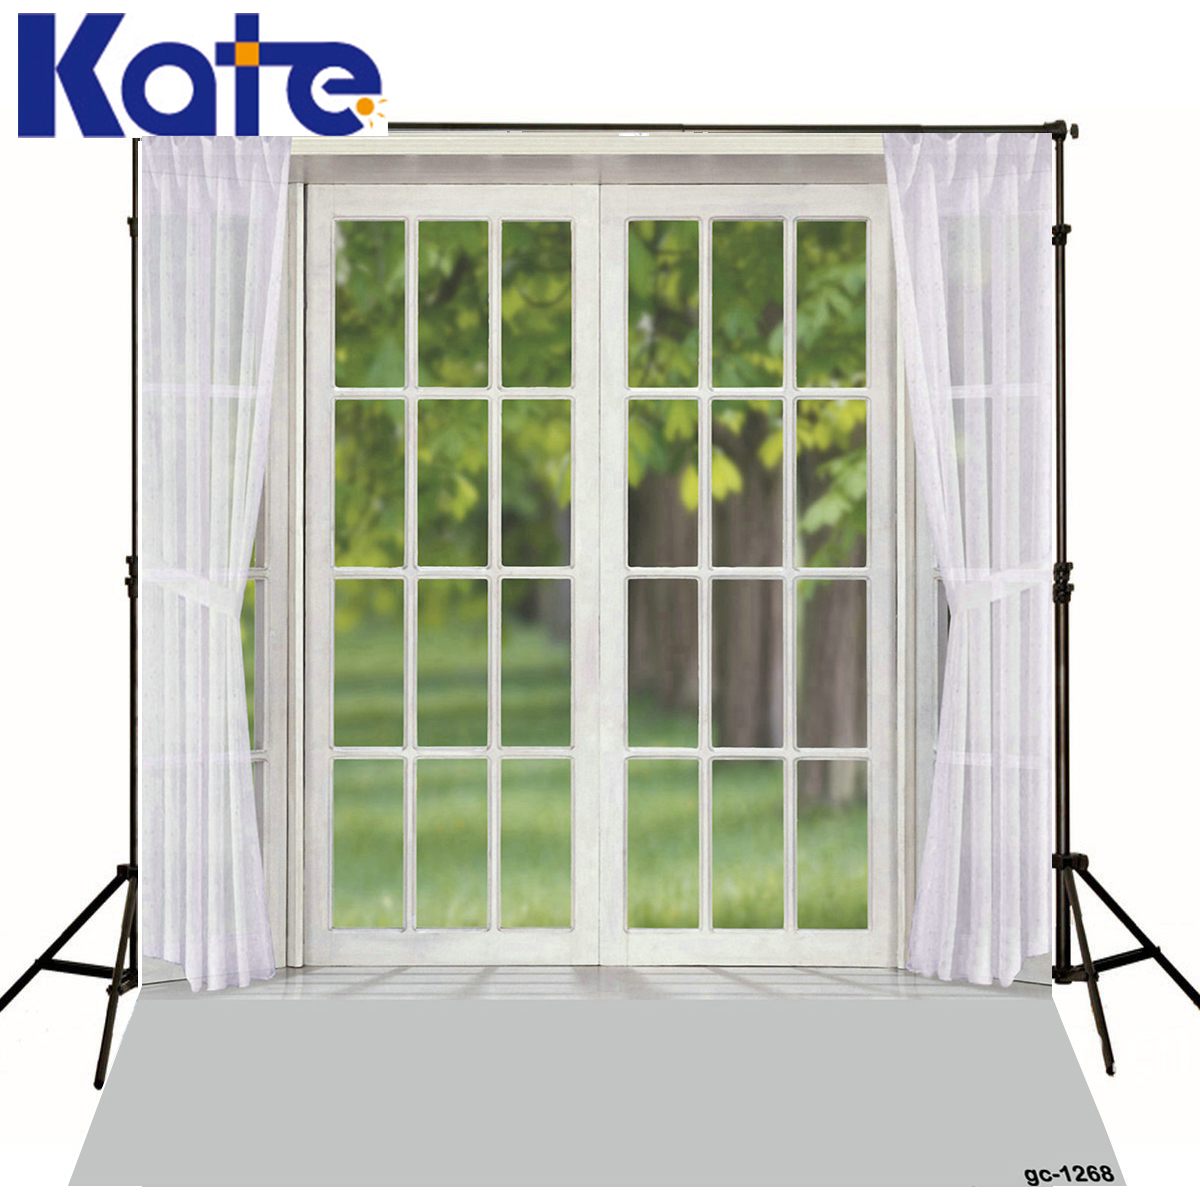 New Desgin White Window Photo Background Curtains Green Screen Photography Backdrops Trees<br><br>Aliexpress